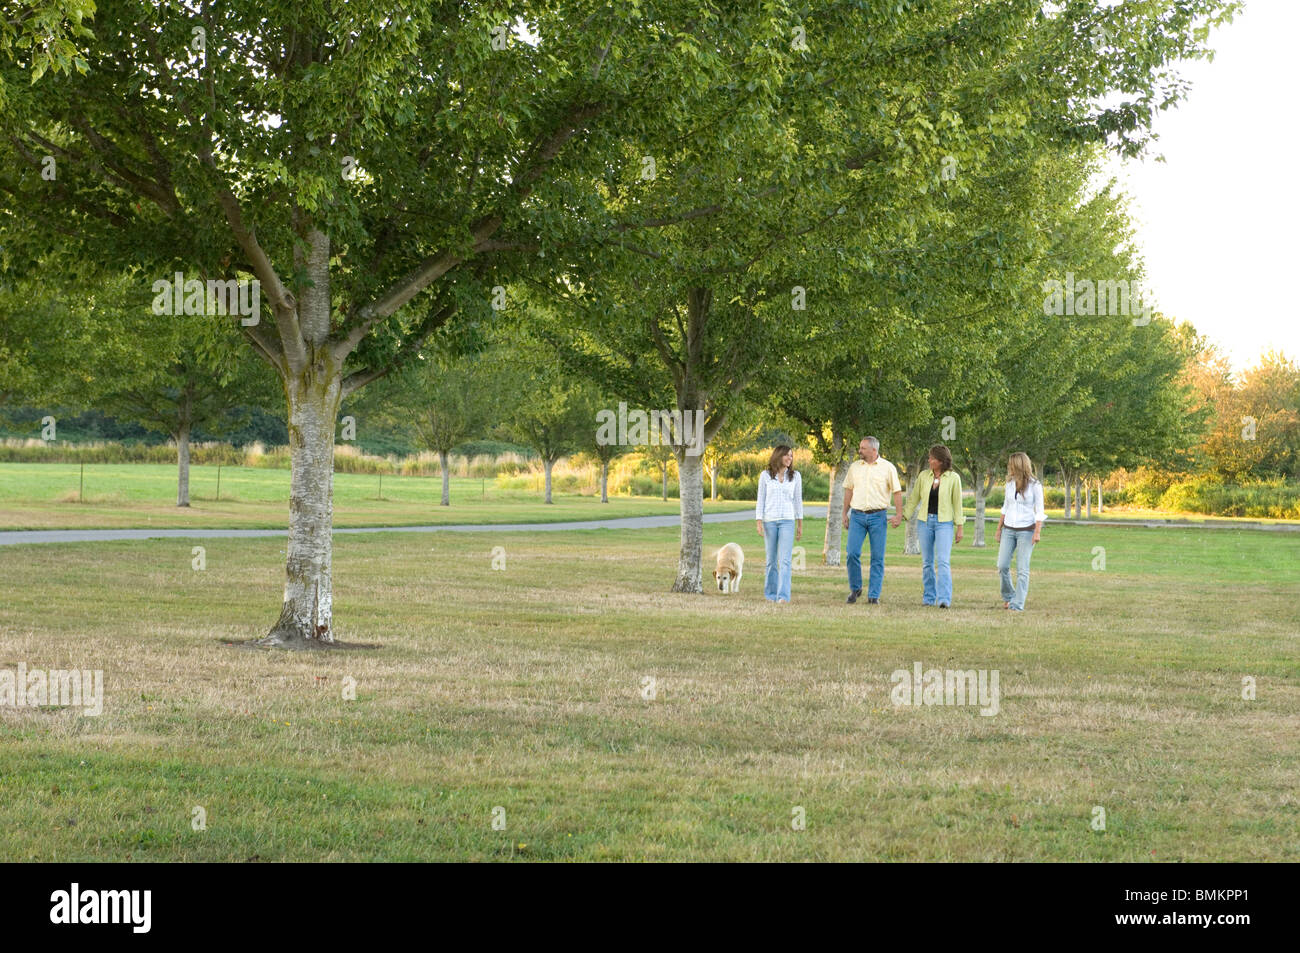 Family of four walking their dog in a park - Stock Image